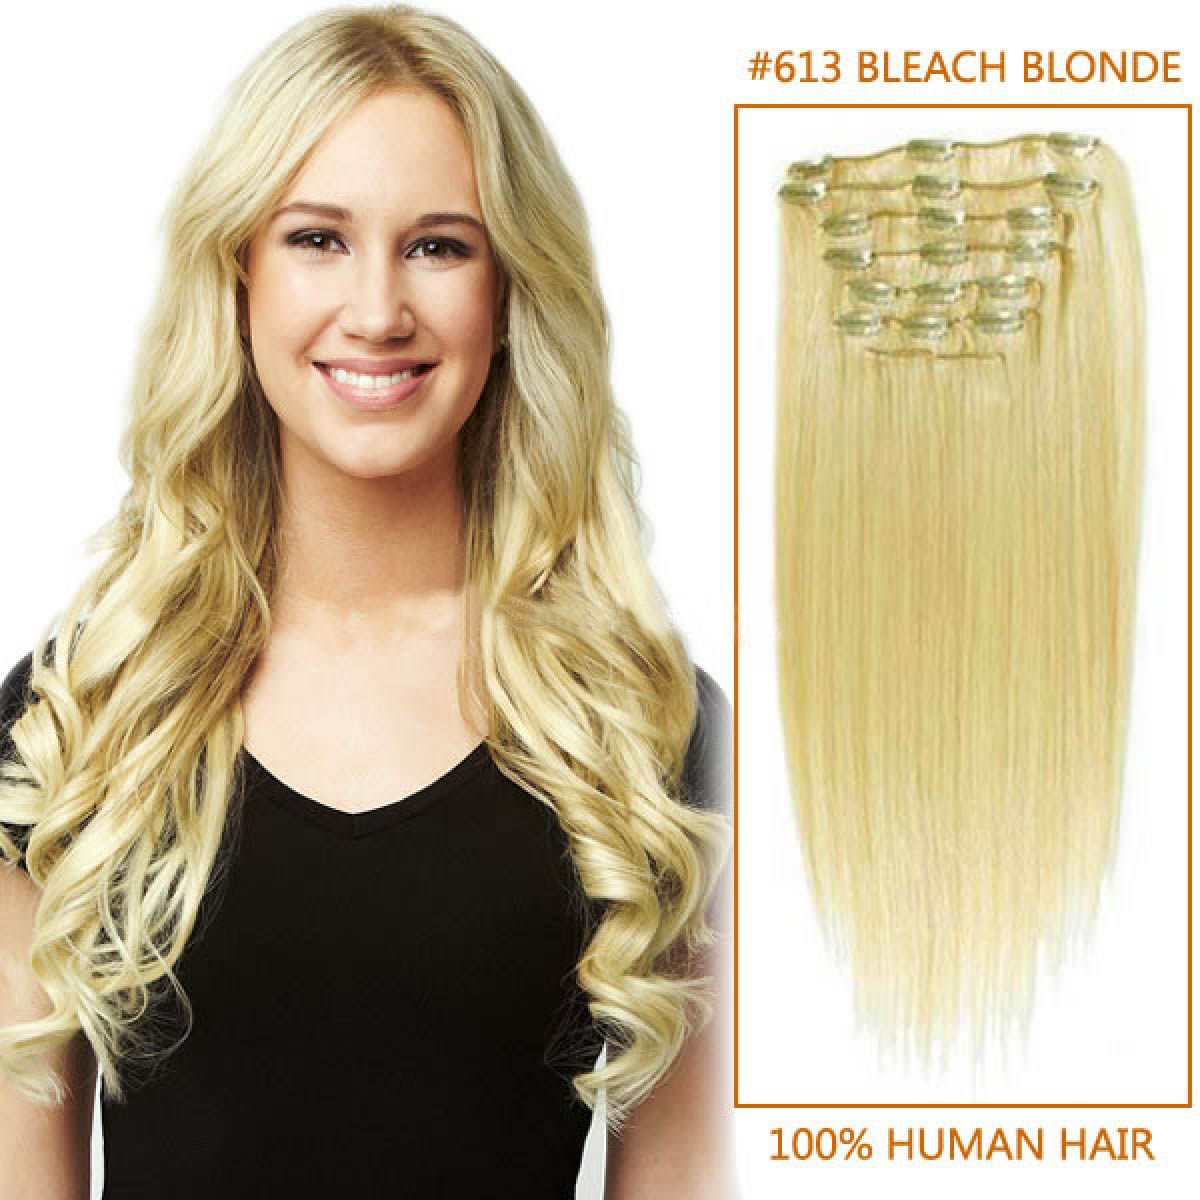 Inch 613 bleach blonde clip in remy human hair extensions 12pcs 20 inch 613 bleach blonde clip in remy human hair extensions 12pcs pmusecretfo Images